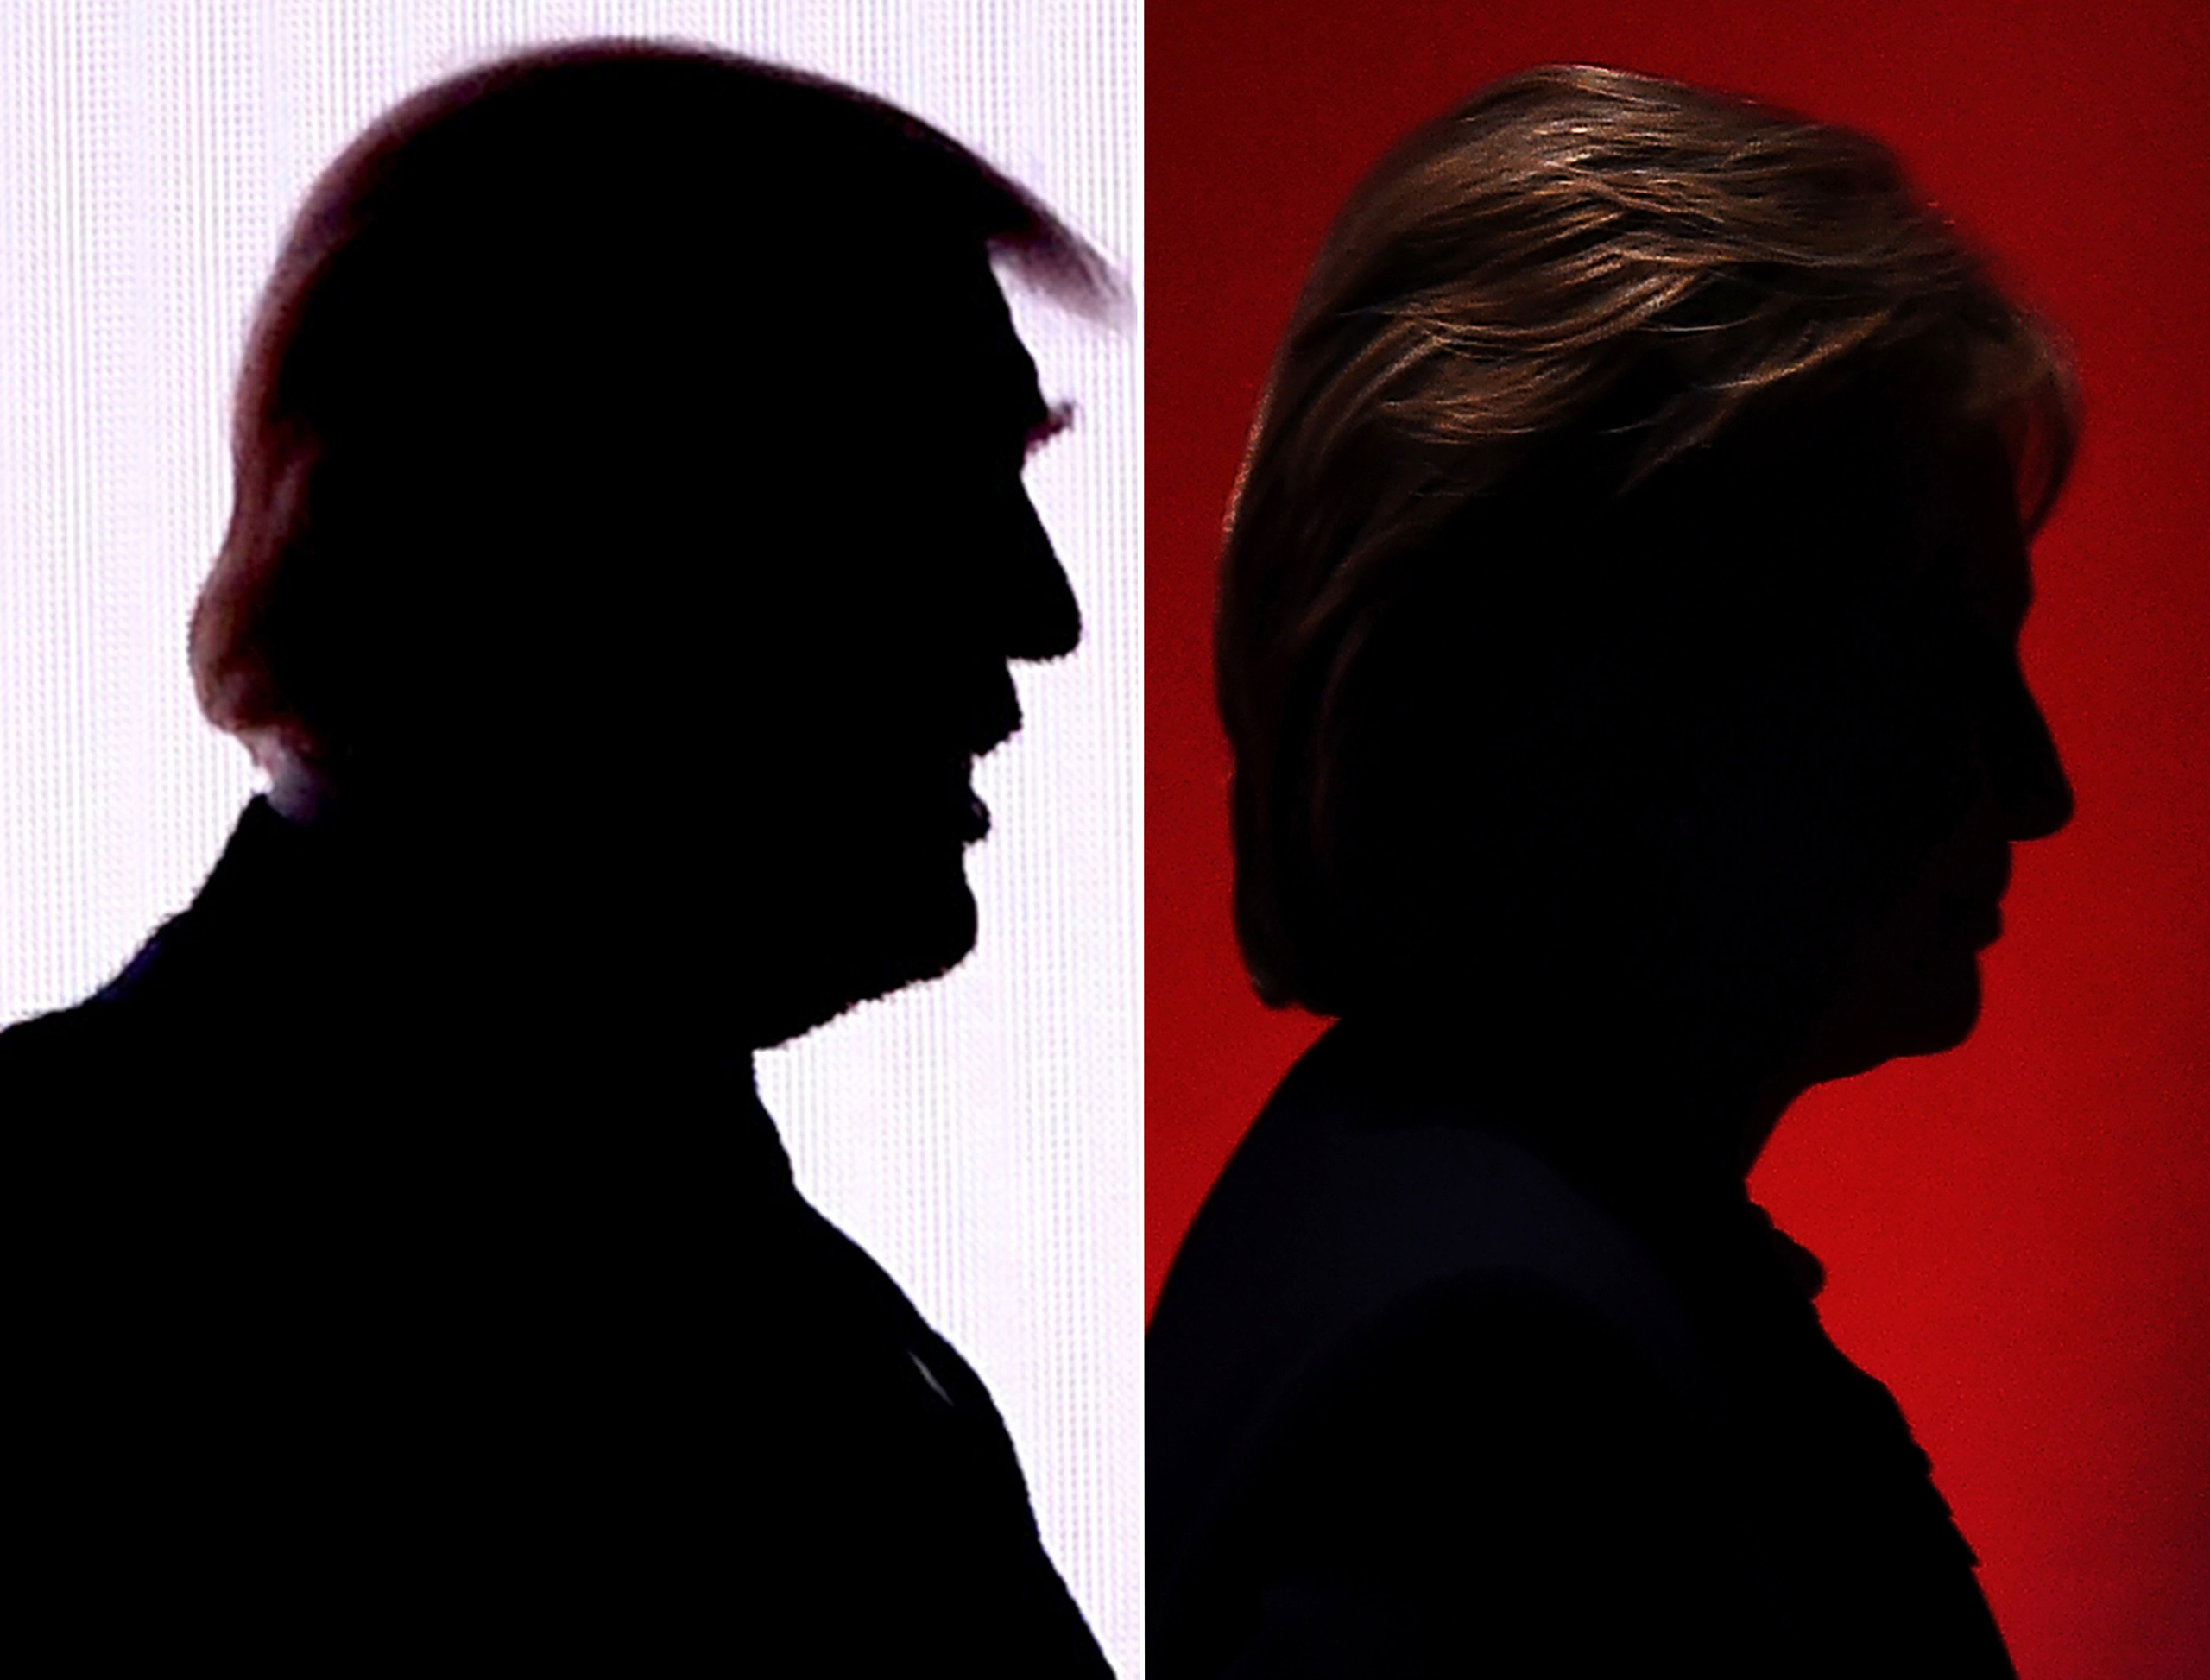 This combination photo shows the silhouettes of Republican presidential nominee Donald Trump on July 18, 2016 and Democratic presidential nominee Hillary Clinton on February 4, 2016.